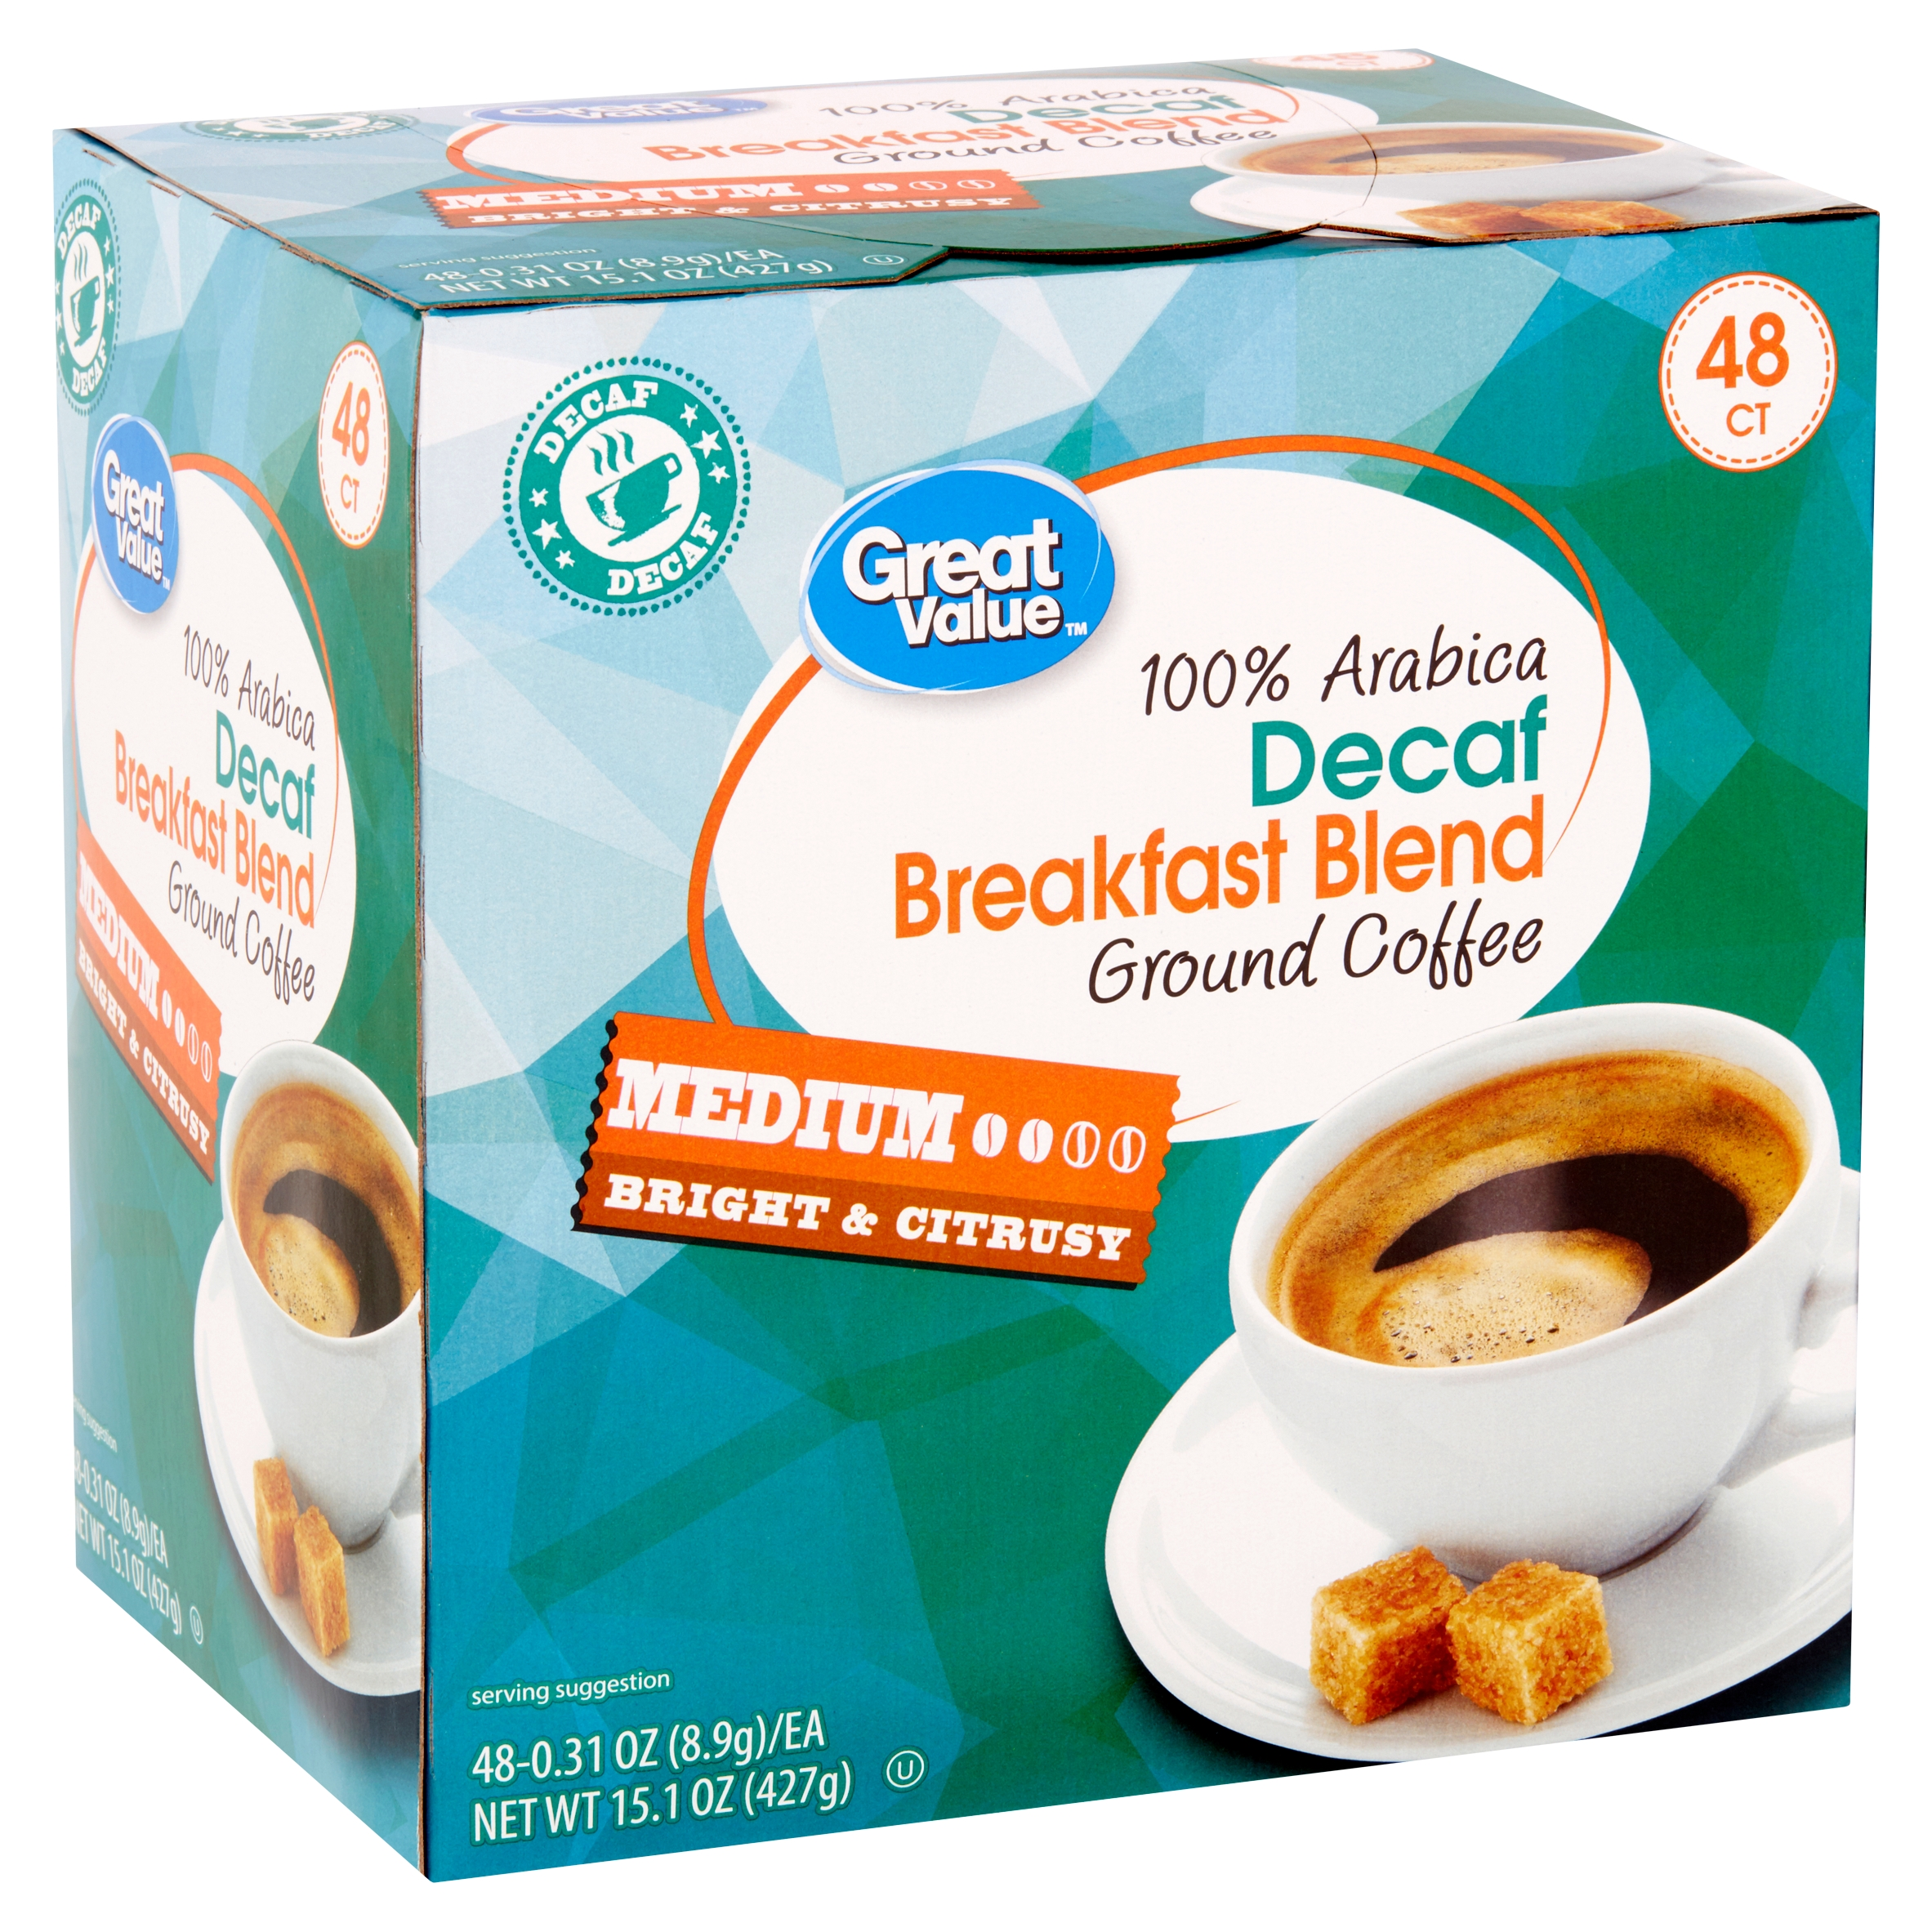 Great Value 100% Arabica Decaf Breakfast Blend Medium Ground Coffee, 0.31 oz, 48 count